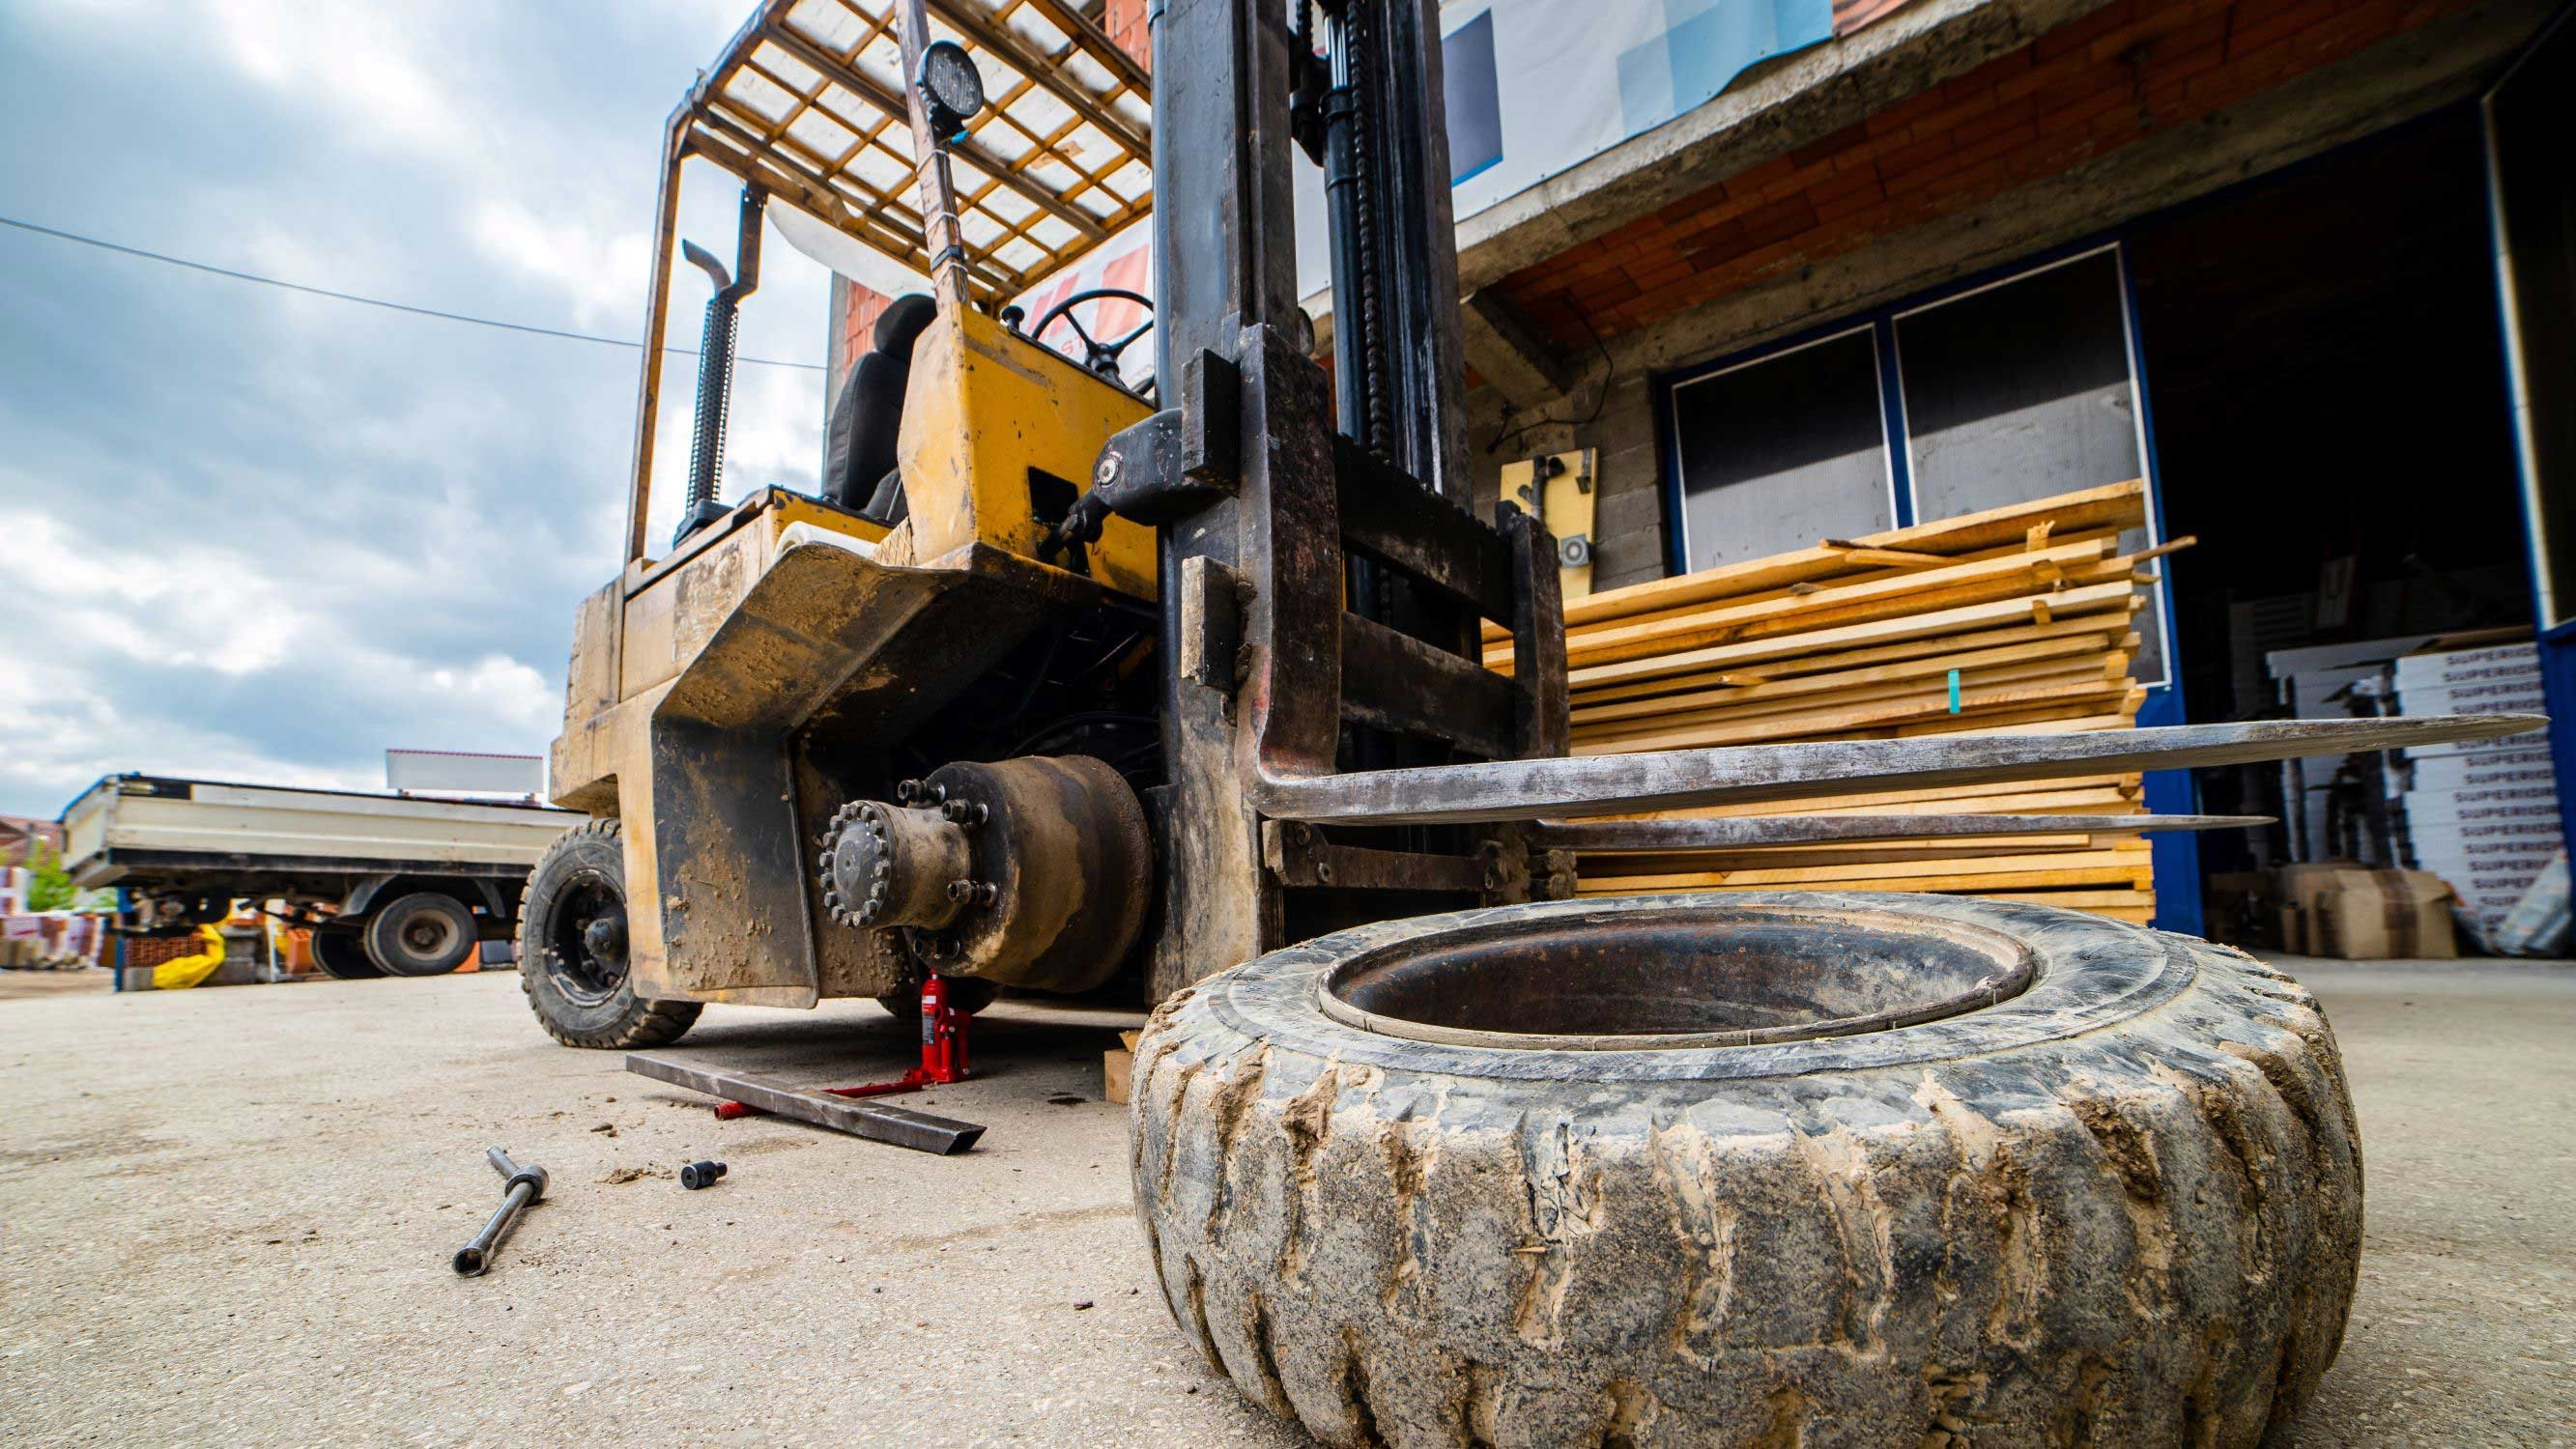 National Forklift Safety Day: How to Avoid The Most Common Forklift Accidents